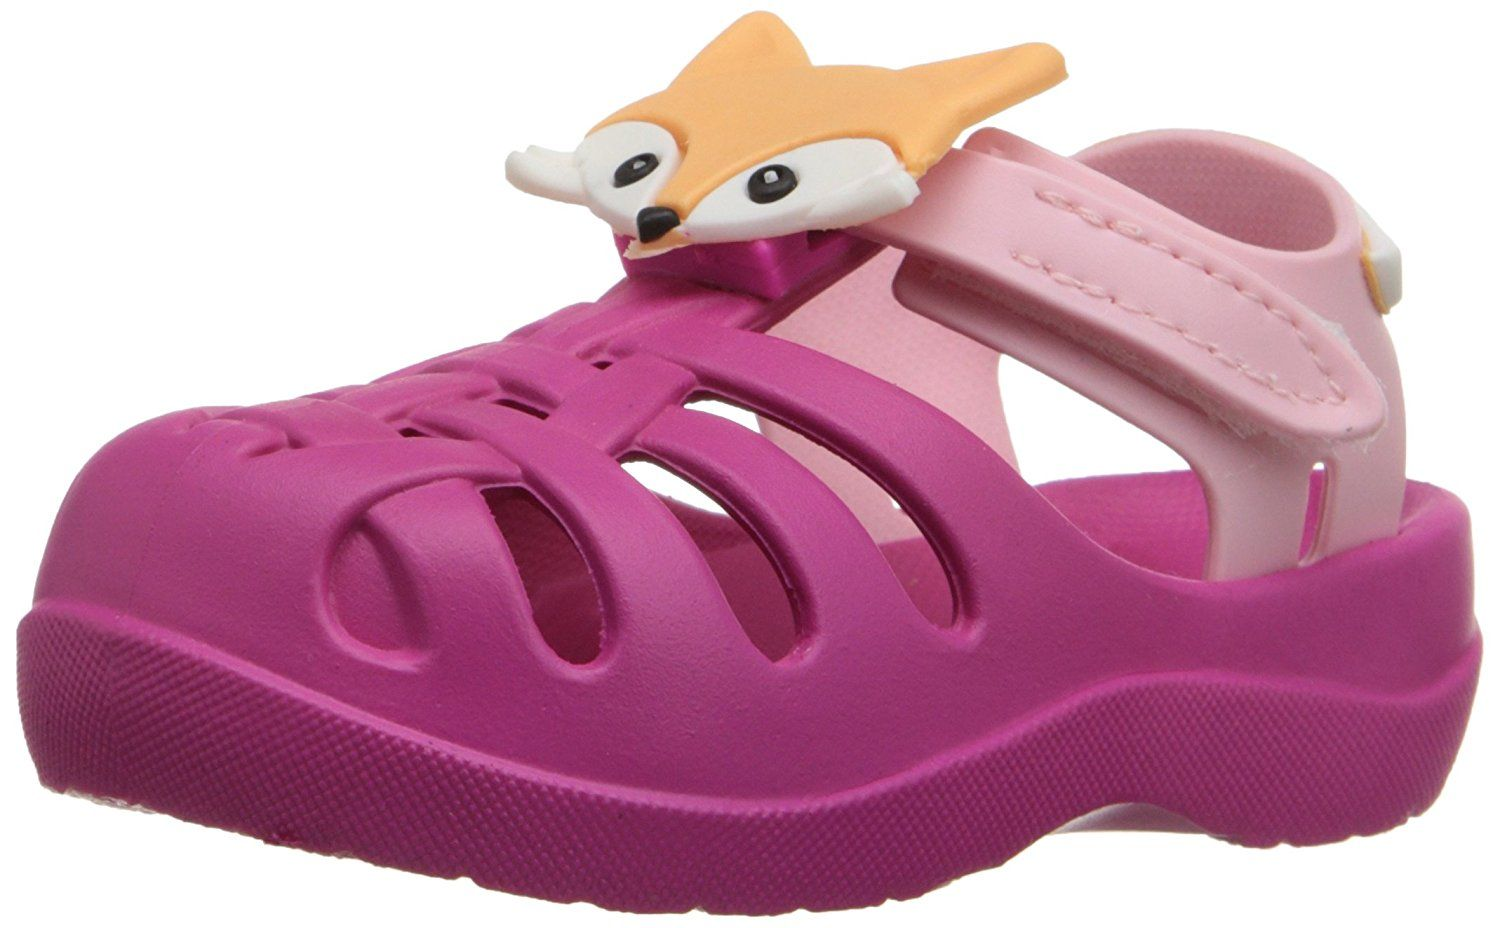 41911aadfca1 Ipanema Summer Baby II Ankle Strap Sandal (Toddler)    Find out more  details by clicking the image - Girls sandals